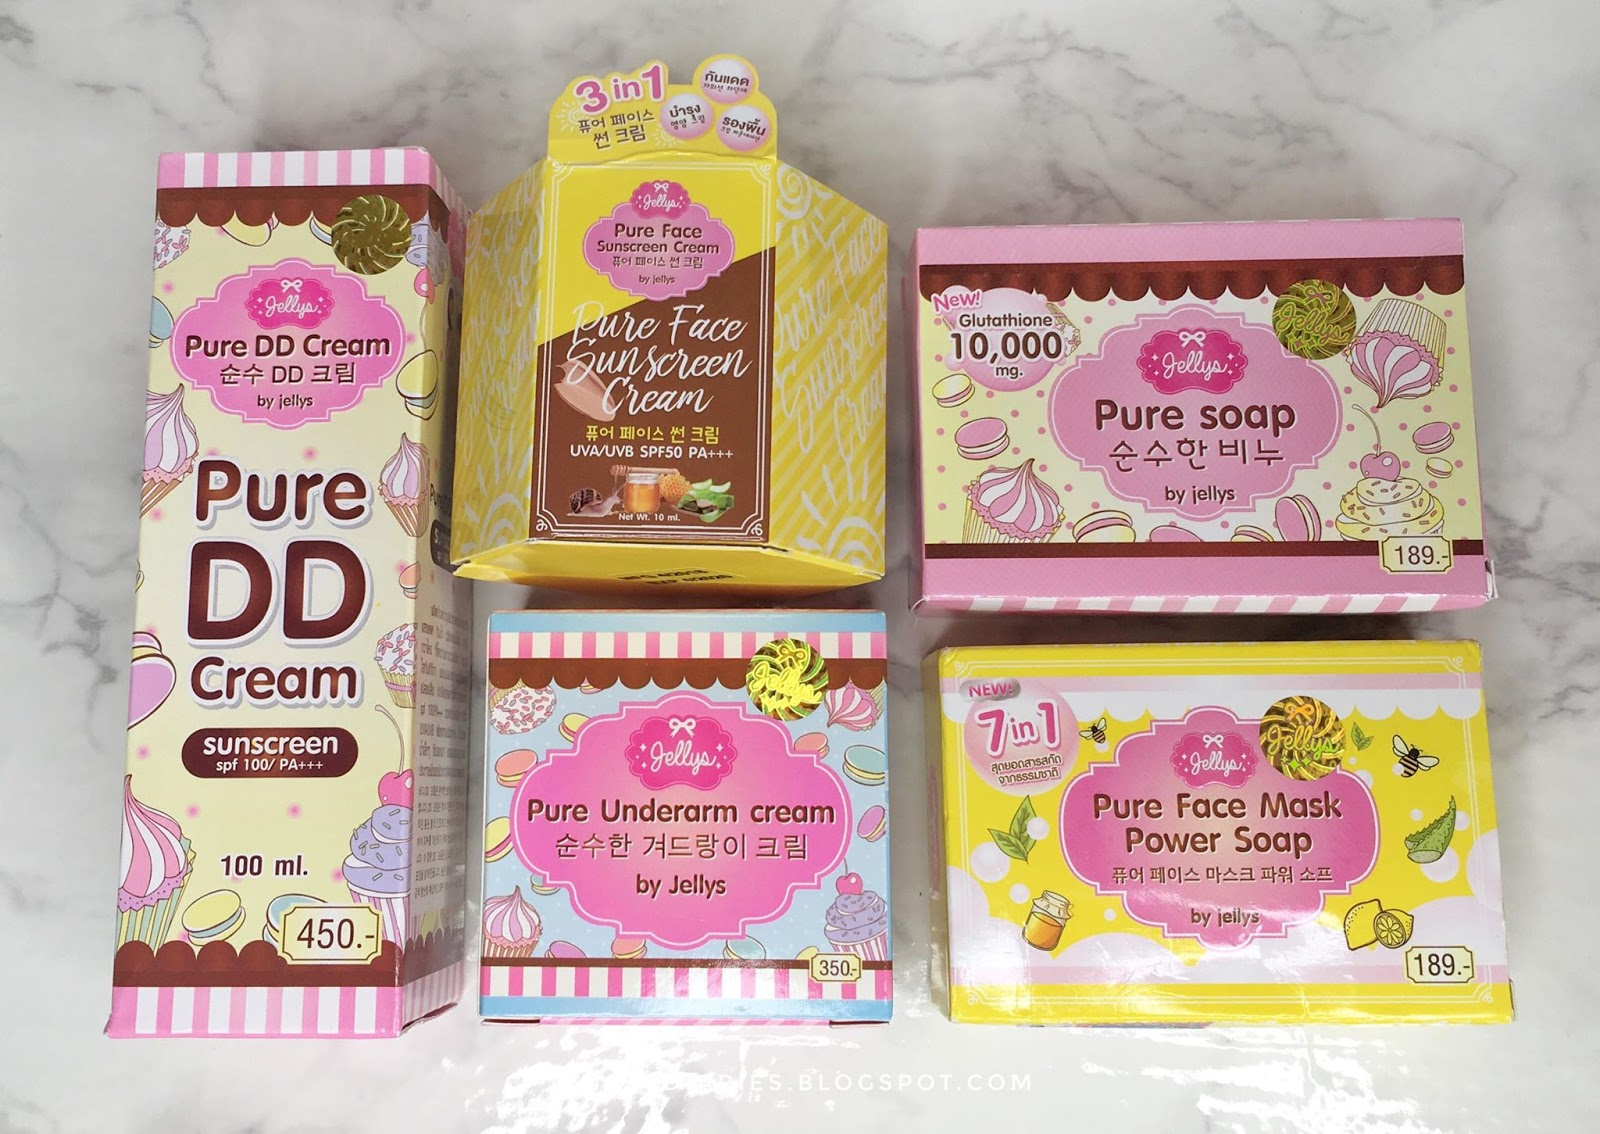 Miss Gs Diaries Thai Beauty Testing And Skincare Products Jellys Pure Face Mask Power Soap I Received These For Free From An Online Seller On Facebook Not My First Time To Try Thailand Made Because If You Remember